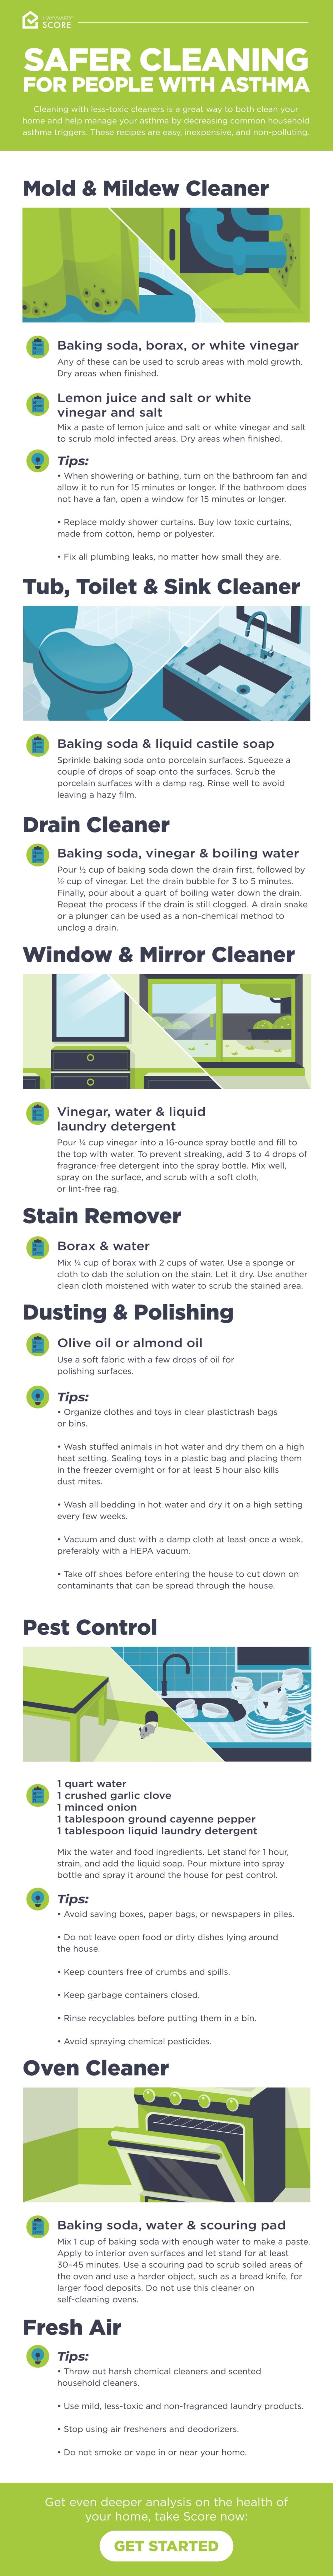 Safer Cleaning For People With Asthma